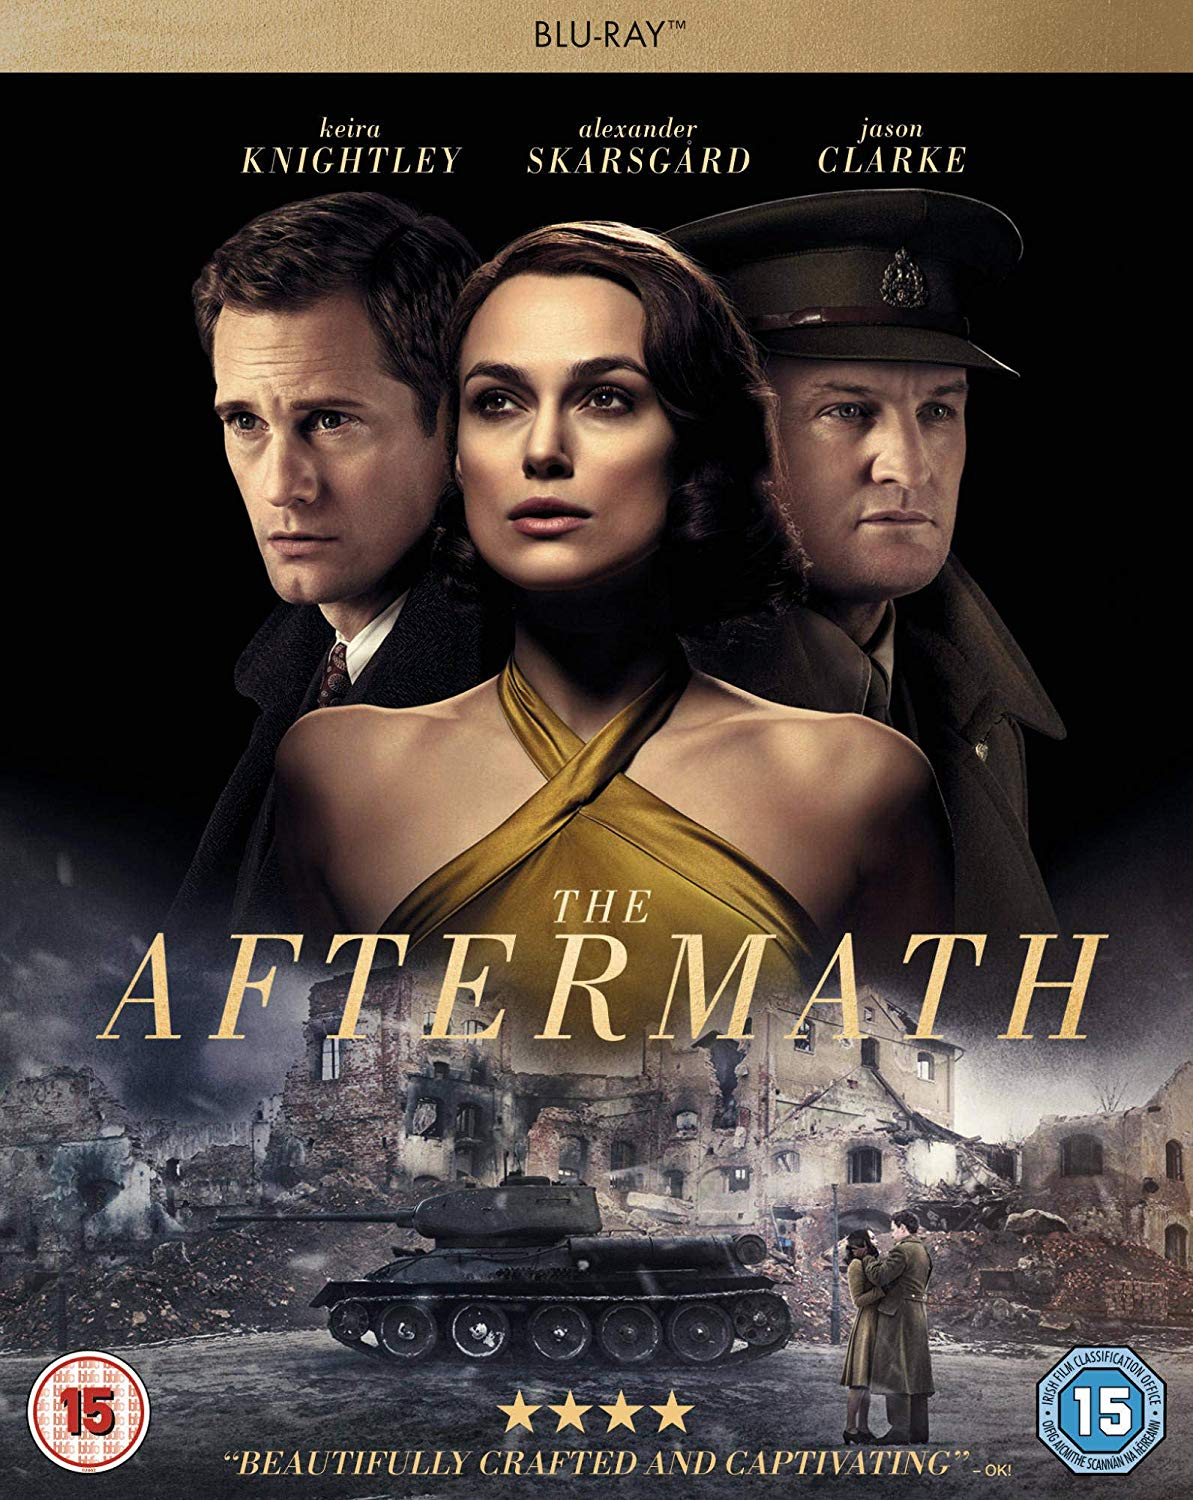 The Aftermath - James Kent [BLU-RAY] OUT 05.07.19 PRE-ORDER NOW